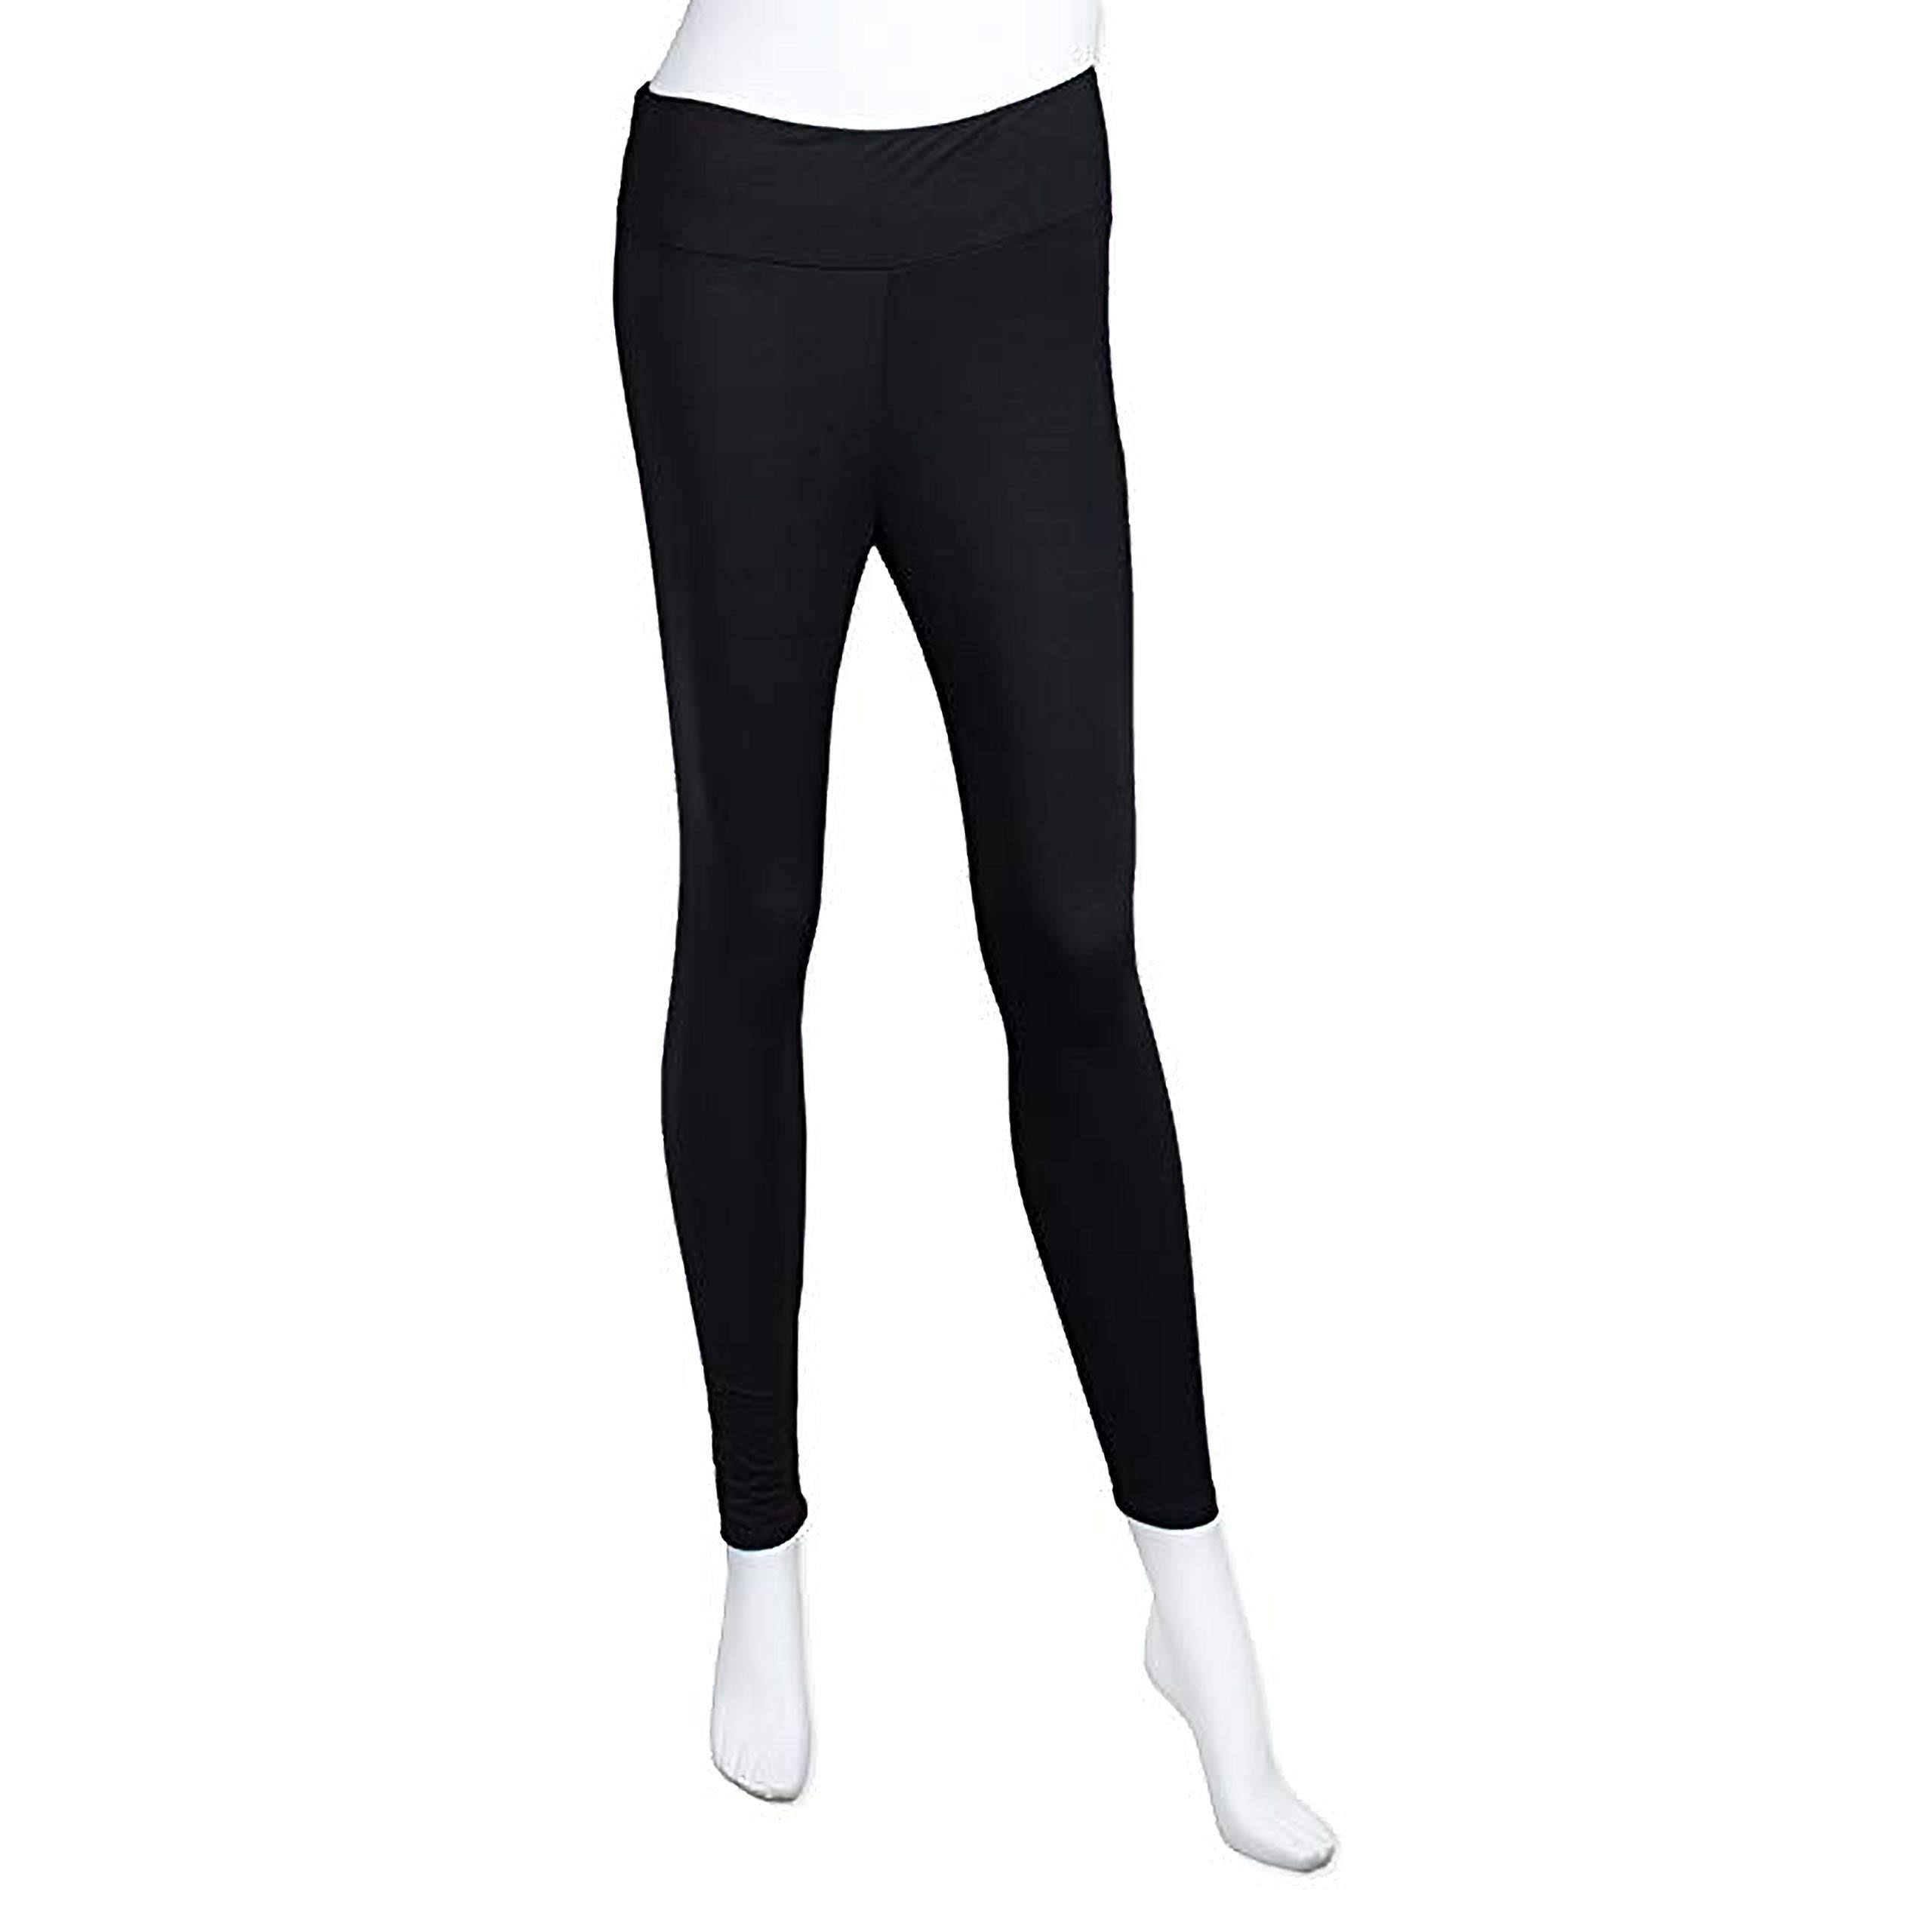 Mary Square Stadium Dailies Ultra Soft Women's Polyester Stretch Leggings